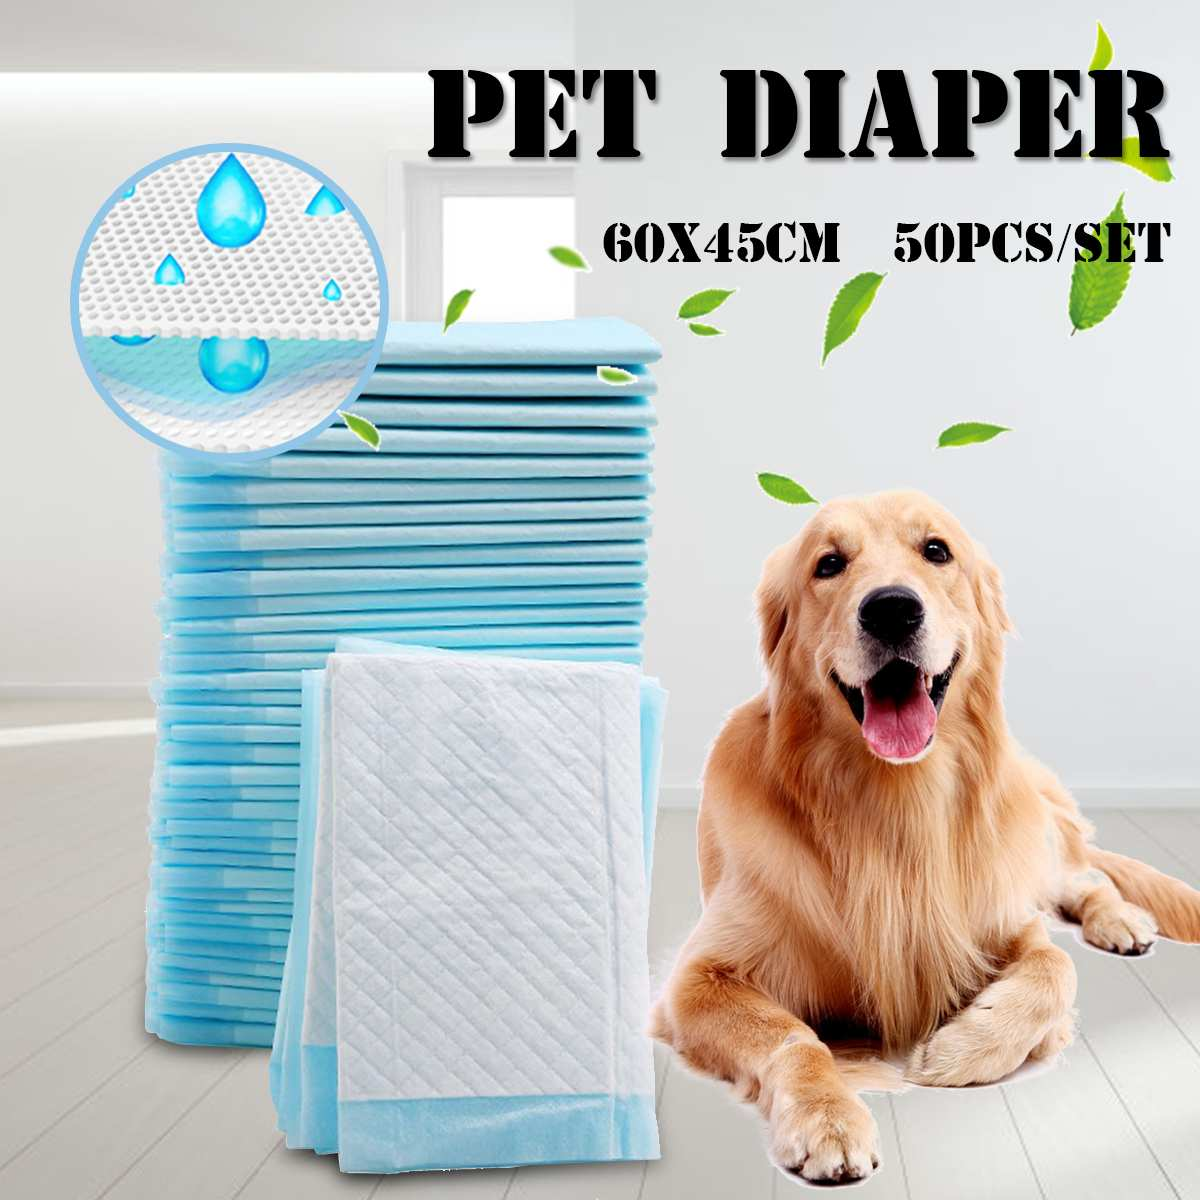 50pcs Pet Disposable Diaper Dog Cat Deodorant Super Absorption Pee Training Dog Tray Accessories For Adult Child/Pets Absorbent